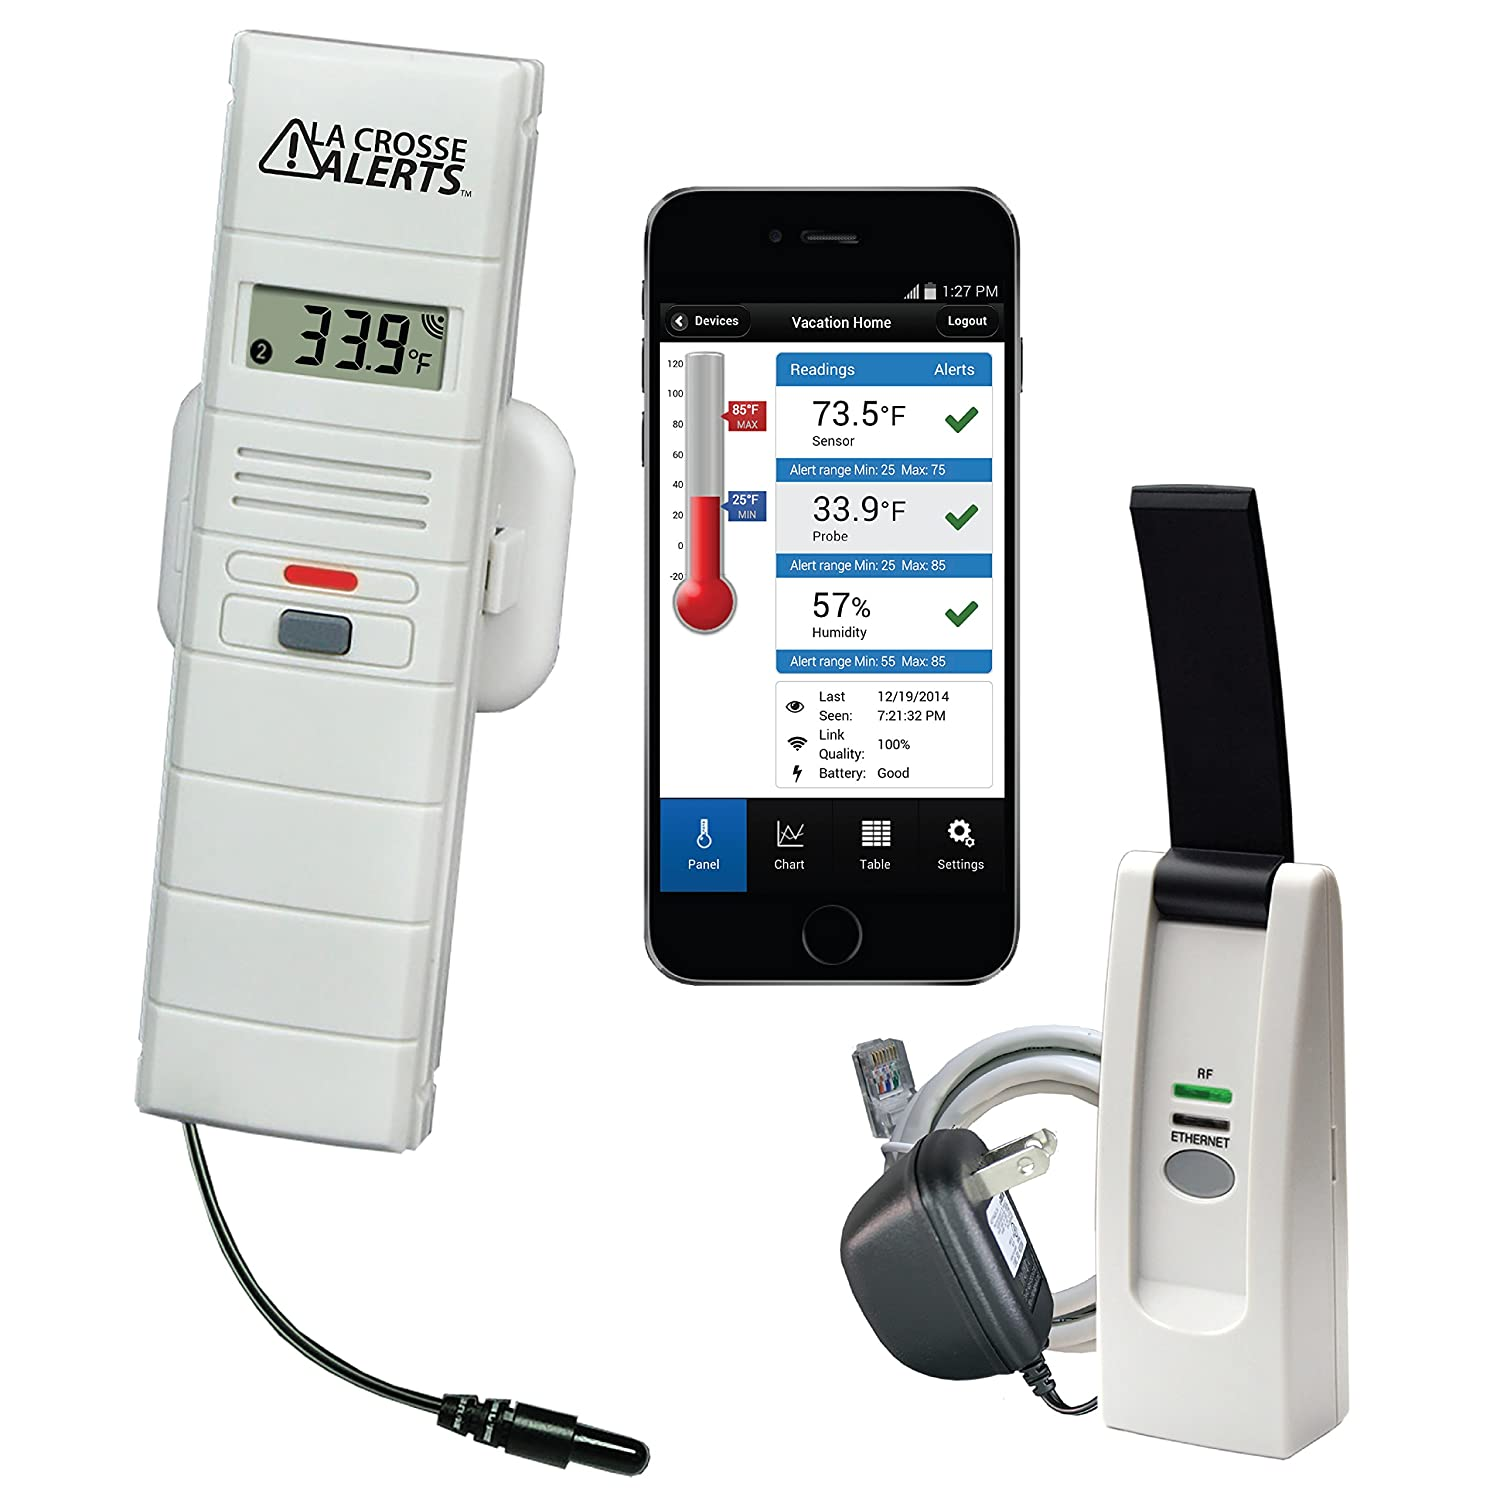 La Crosse Technology 926-25101-GH Greenhouse Monitoring System with Dry Probe for Early Warning Alerts & Wireless mobility B01KC7GX42